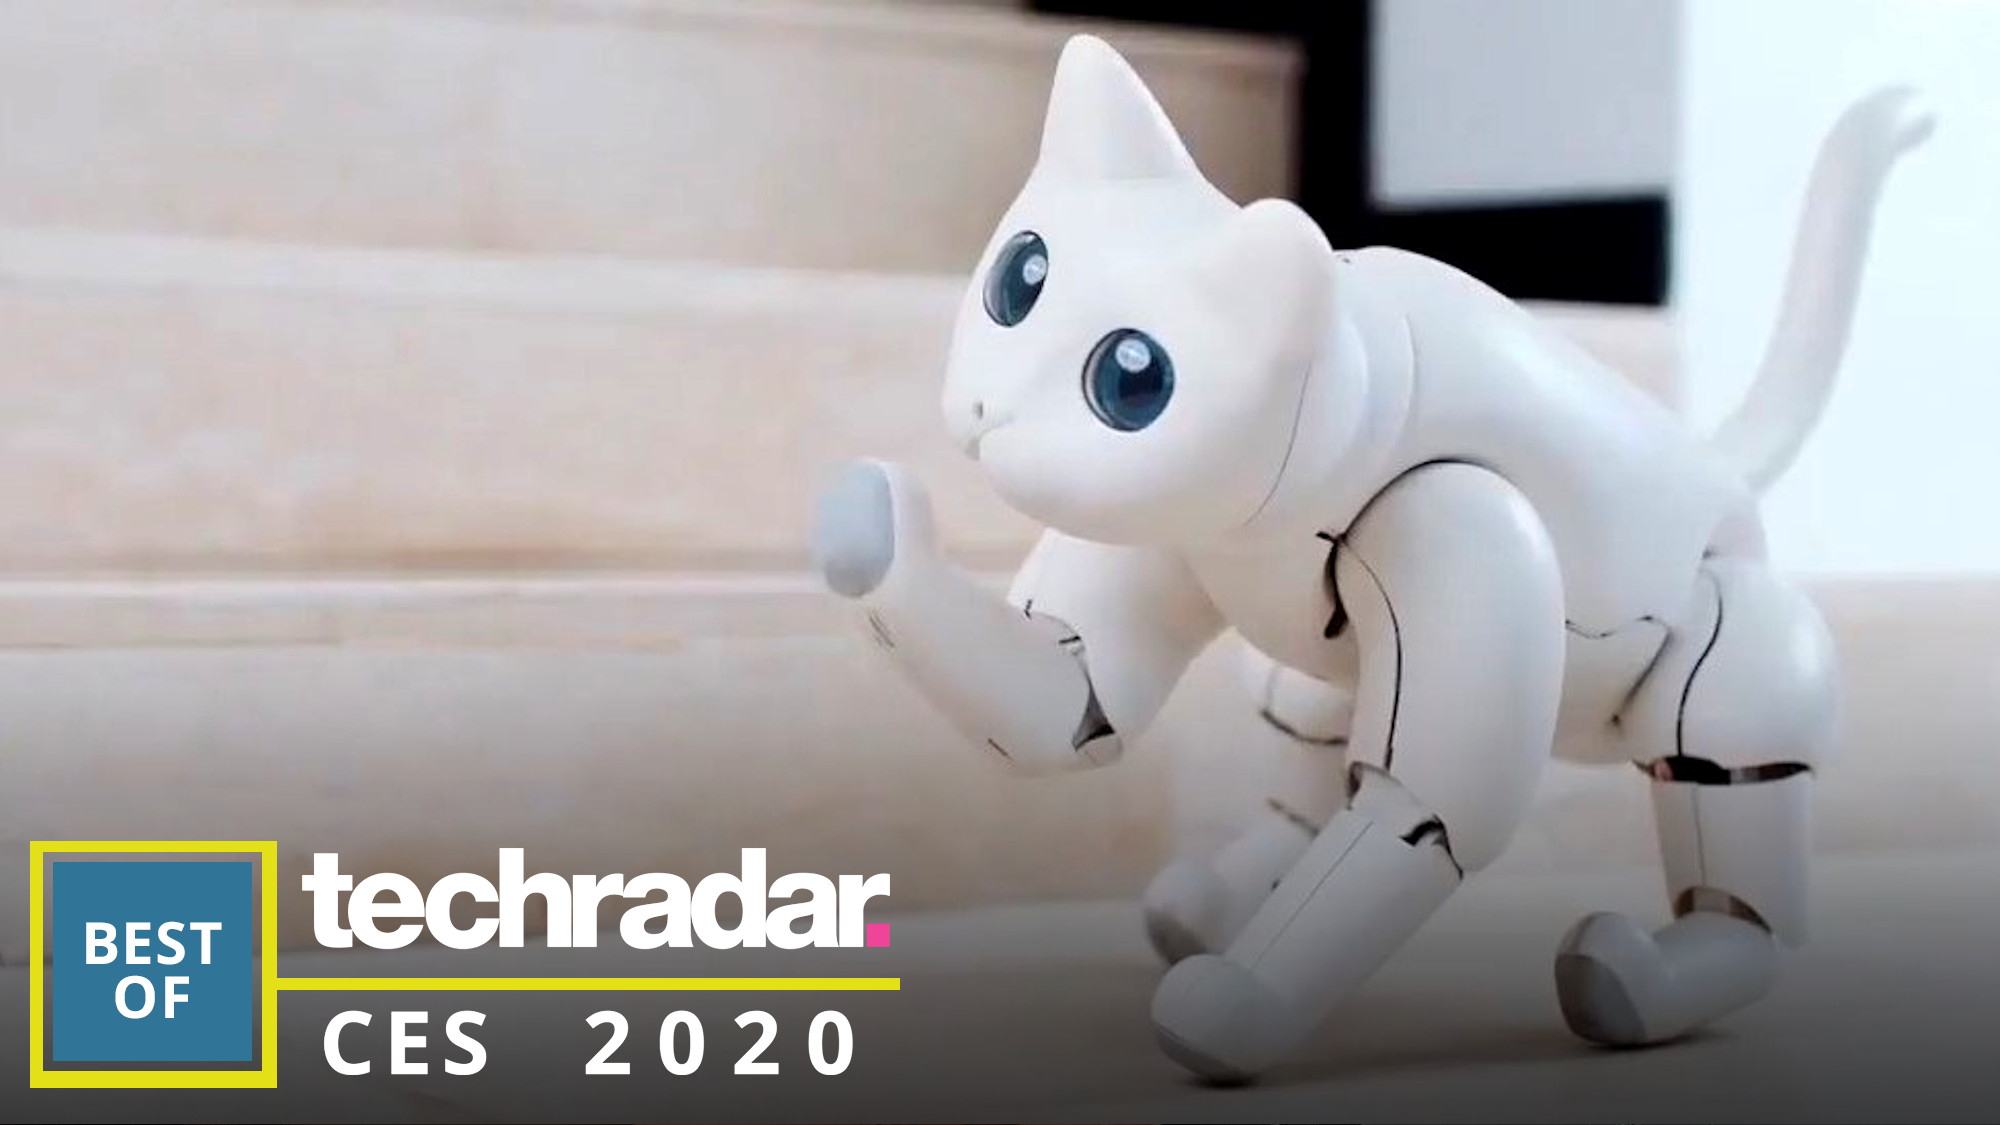 The best robots from CES 2020: the cute, the cuddly and the confusing